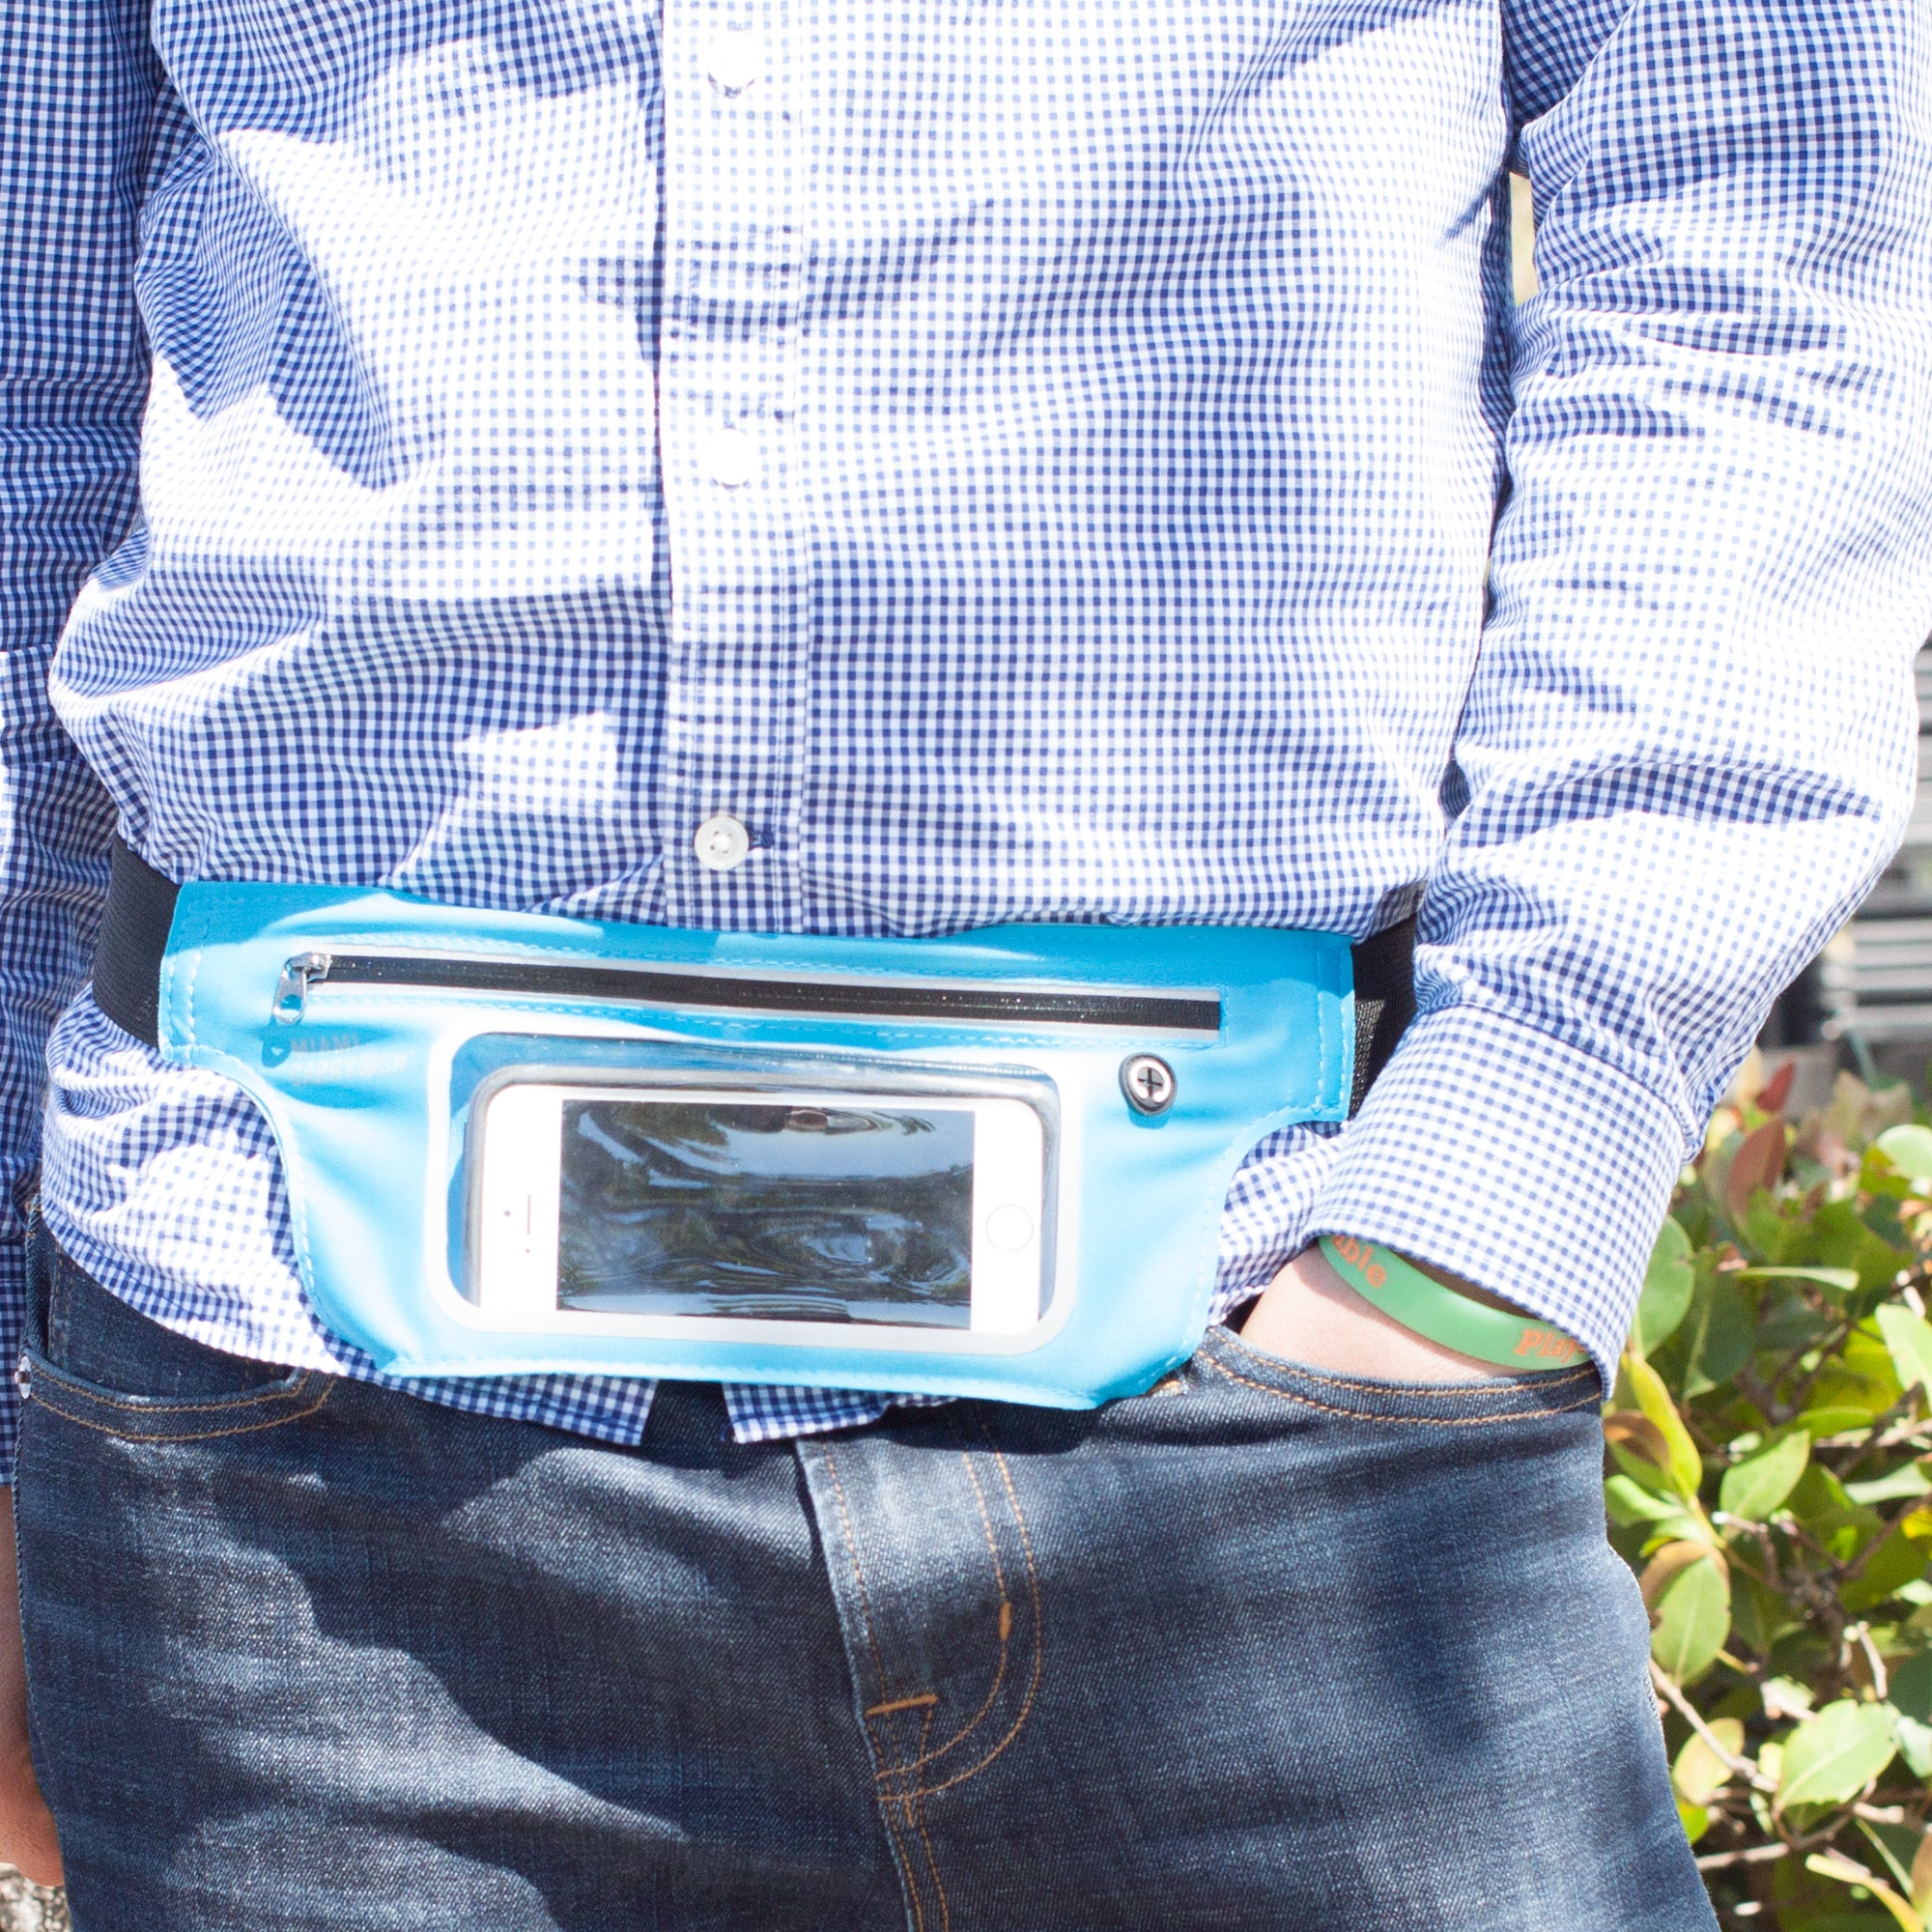 Water-Resistant Workout Belt for Smartphones - [variant_title] - Travellty